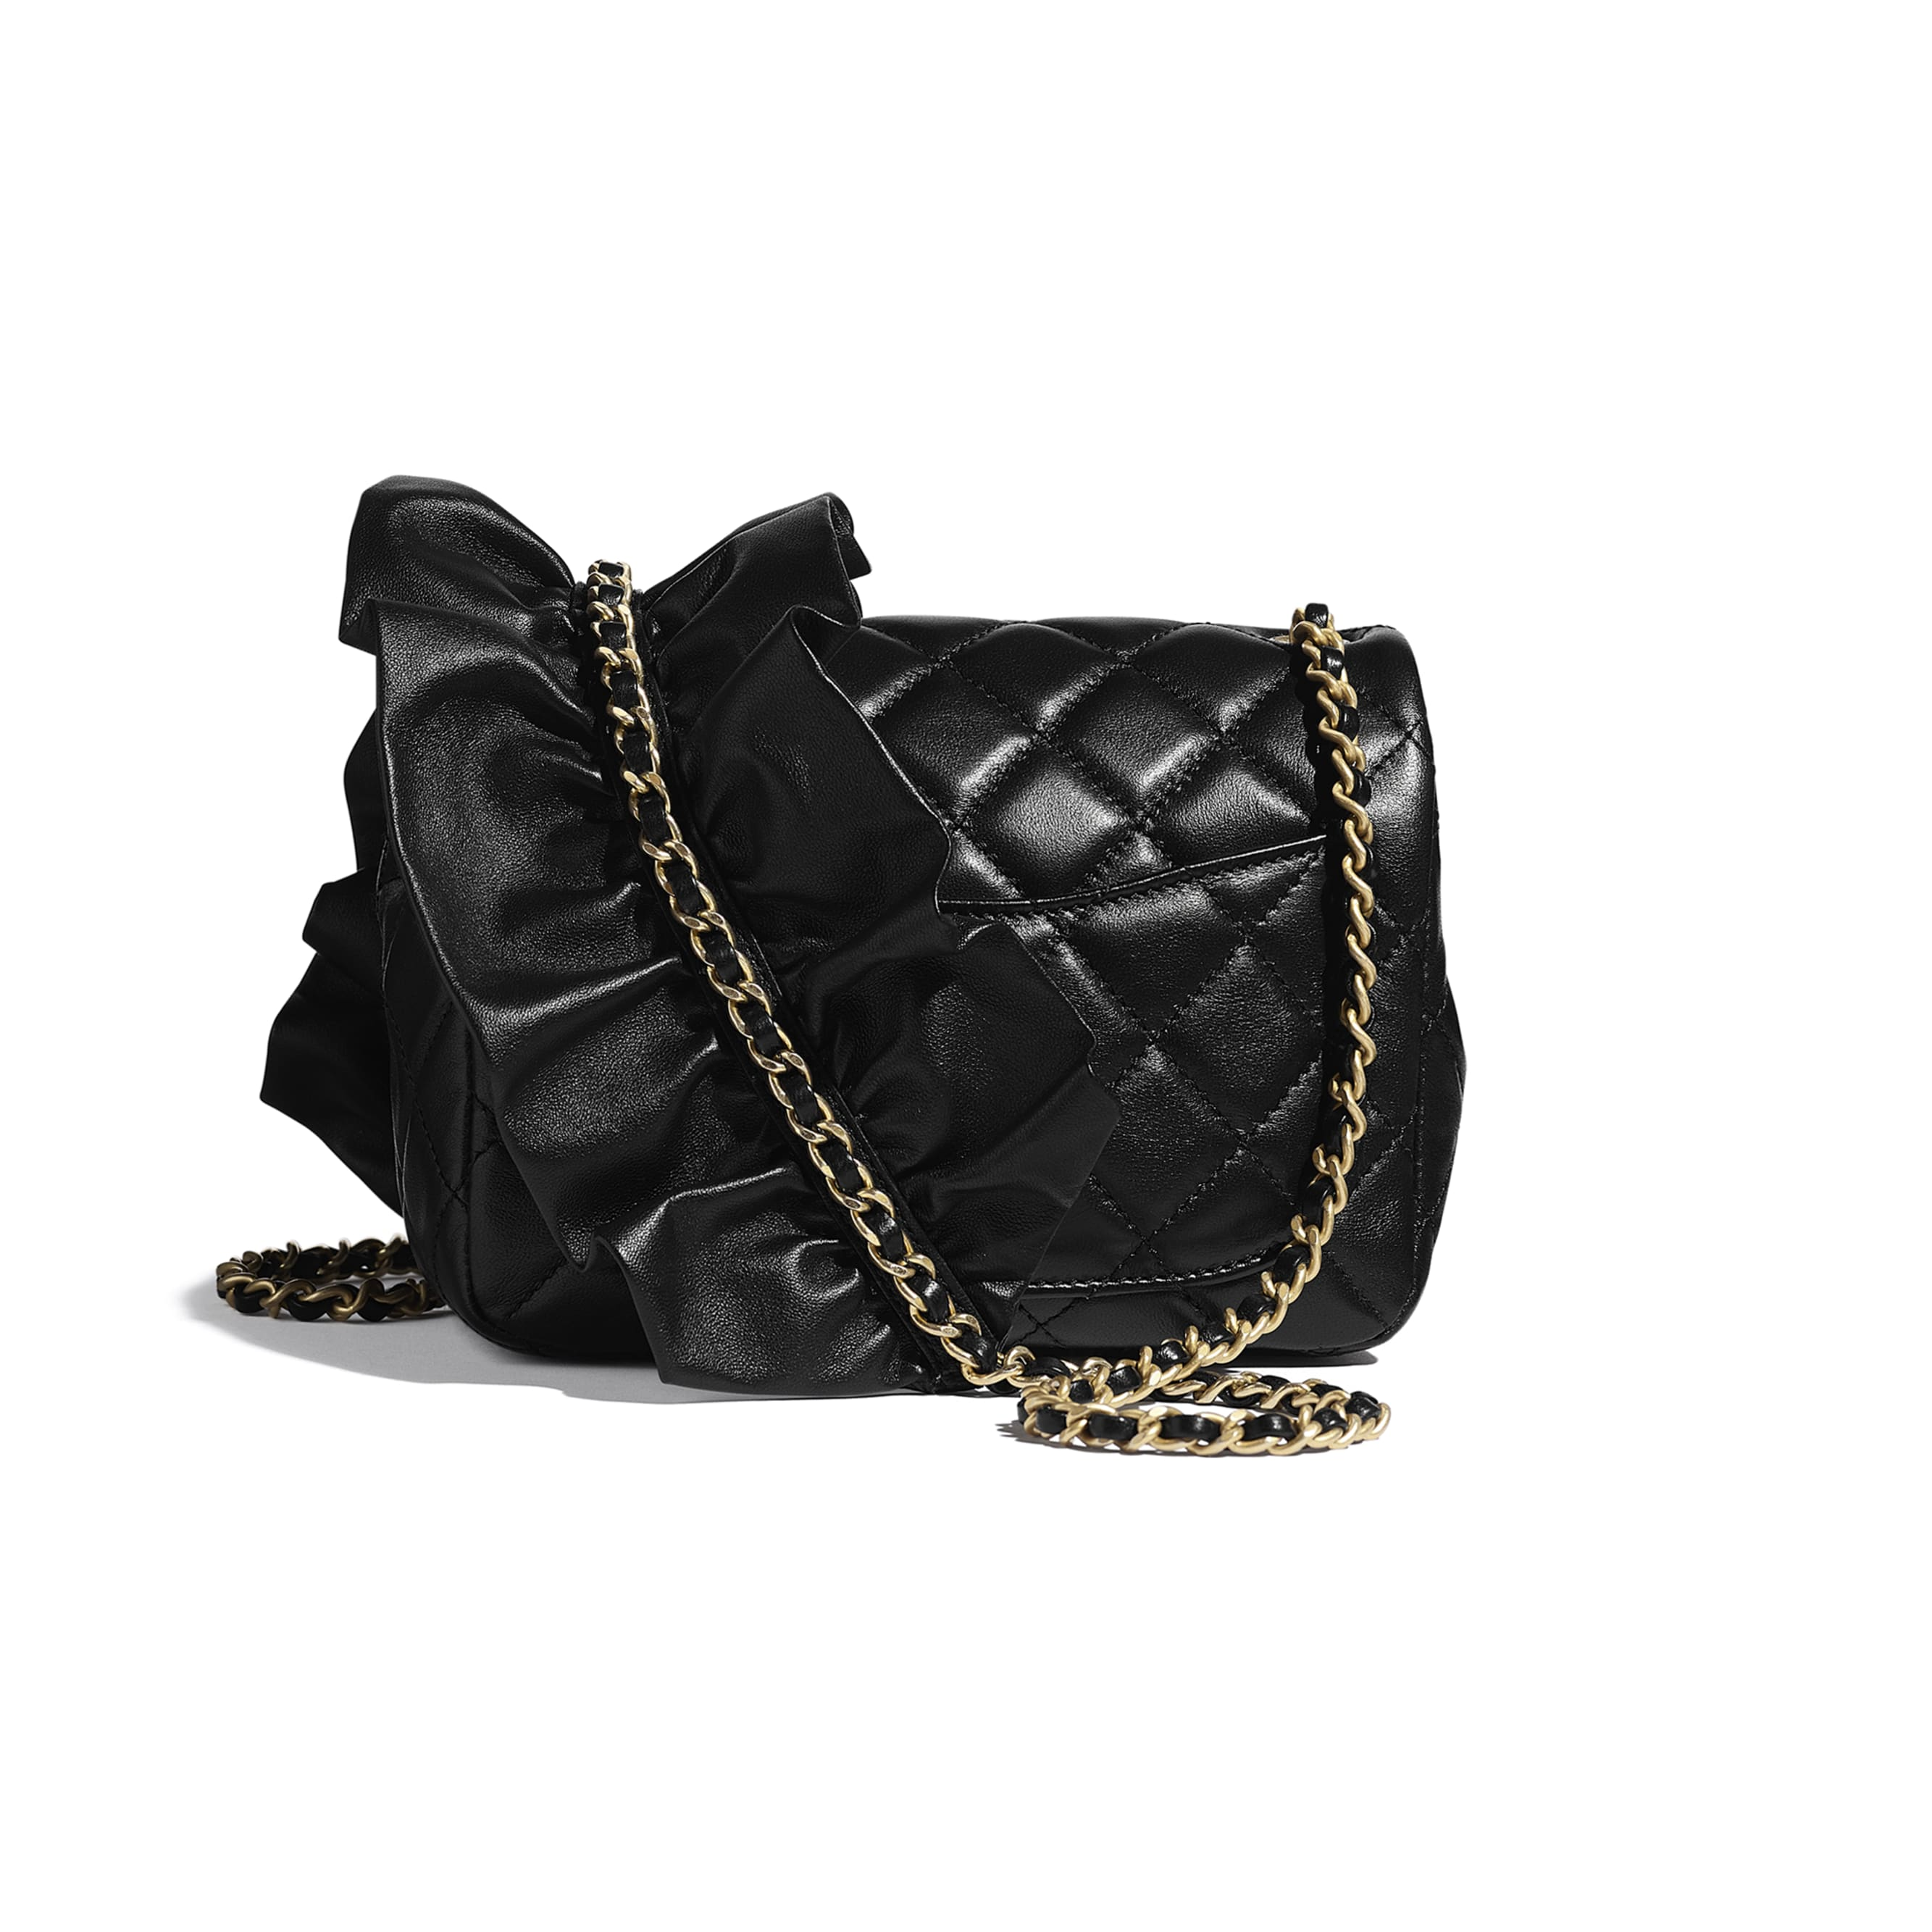 Small Flap Bag - Black - Lambskin - CHANEL - Alternative view - see standard sized version